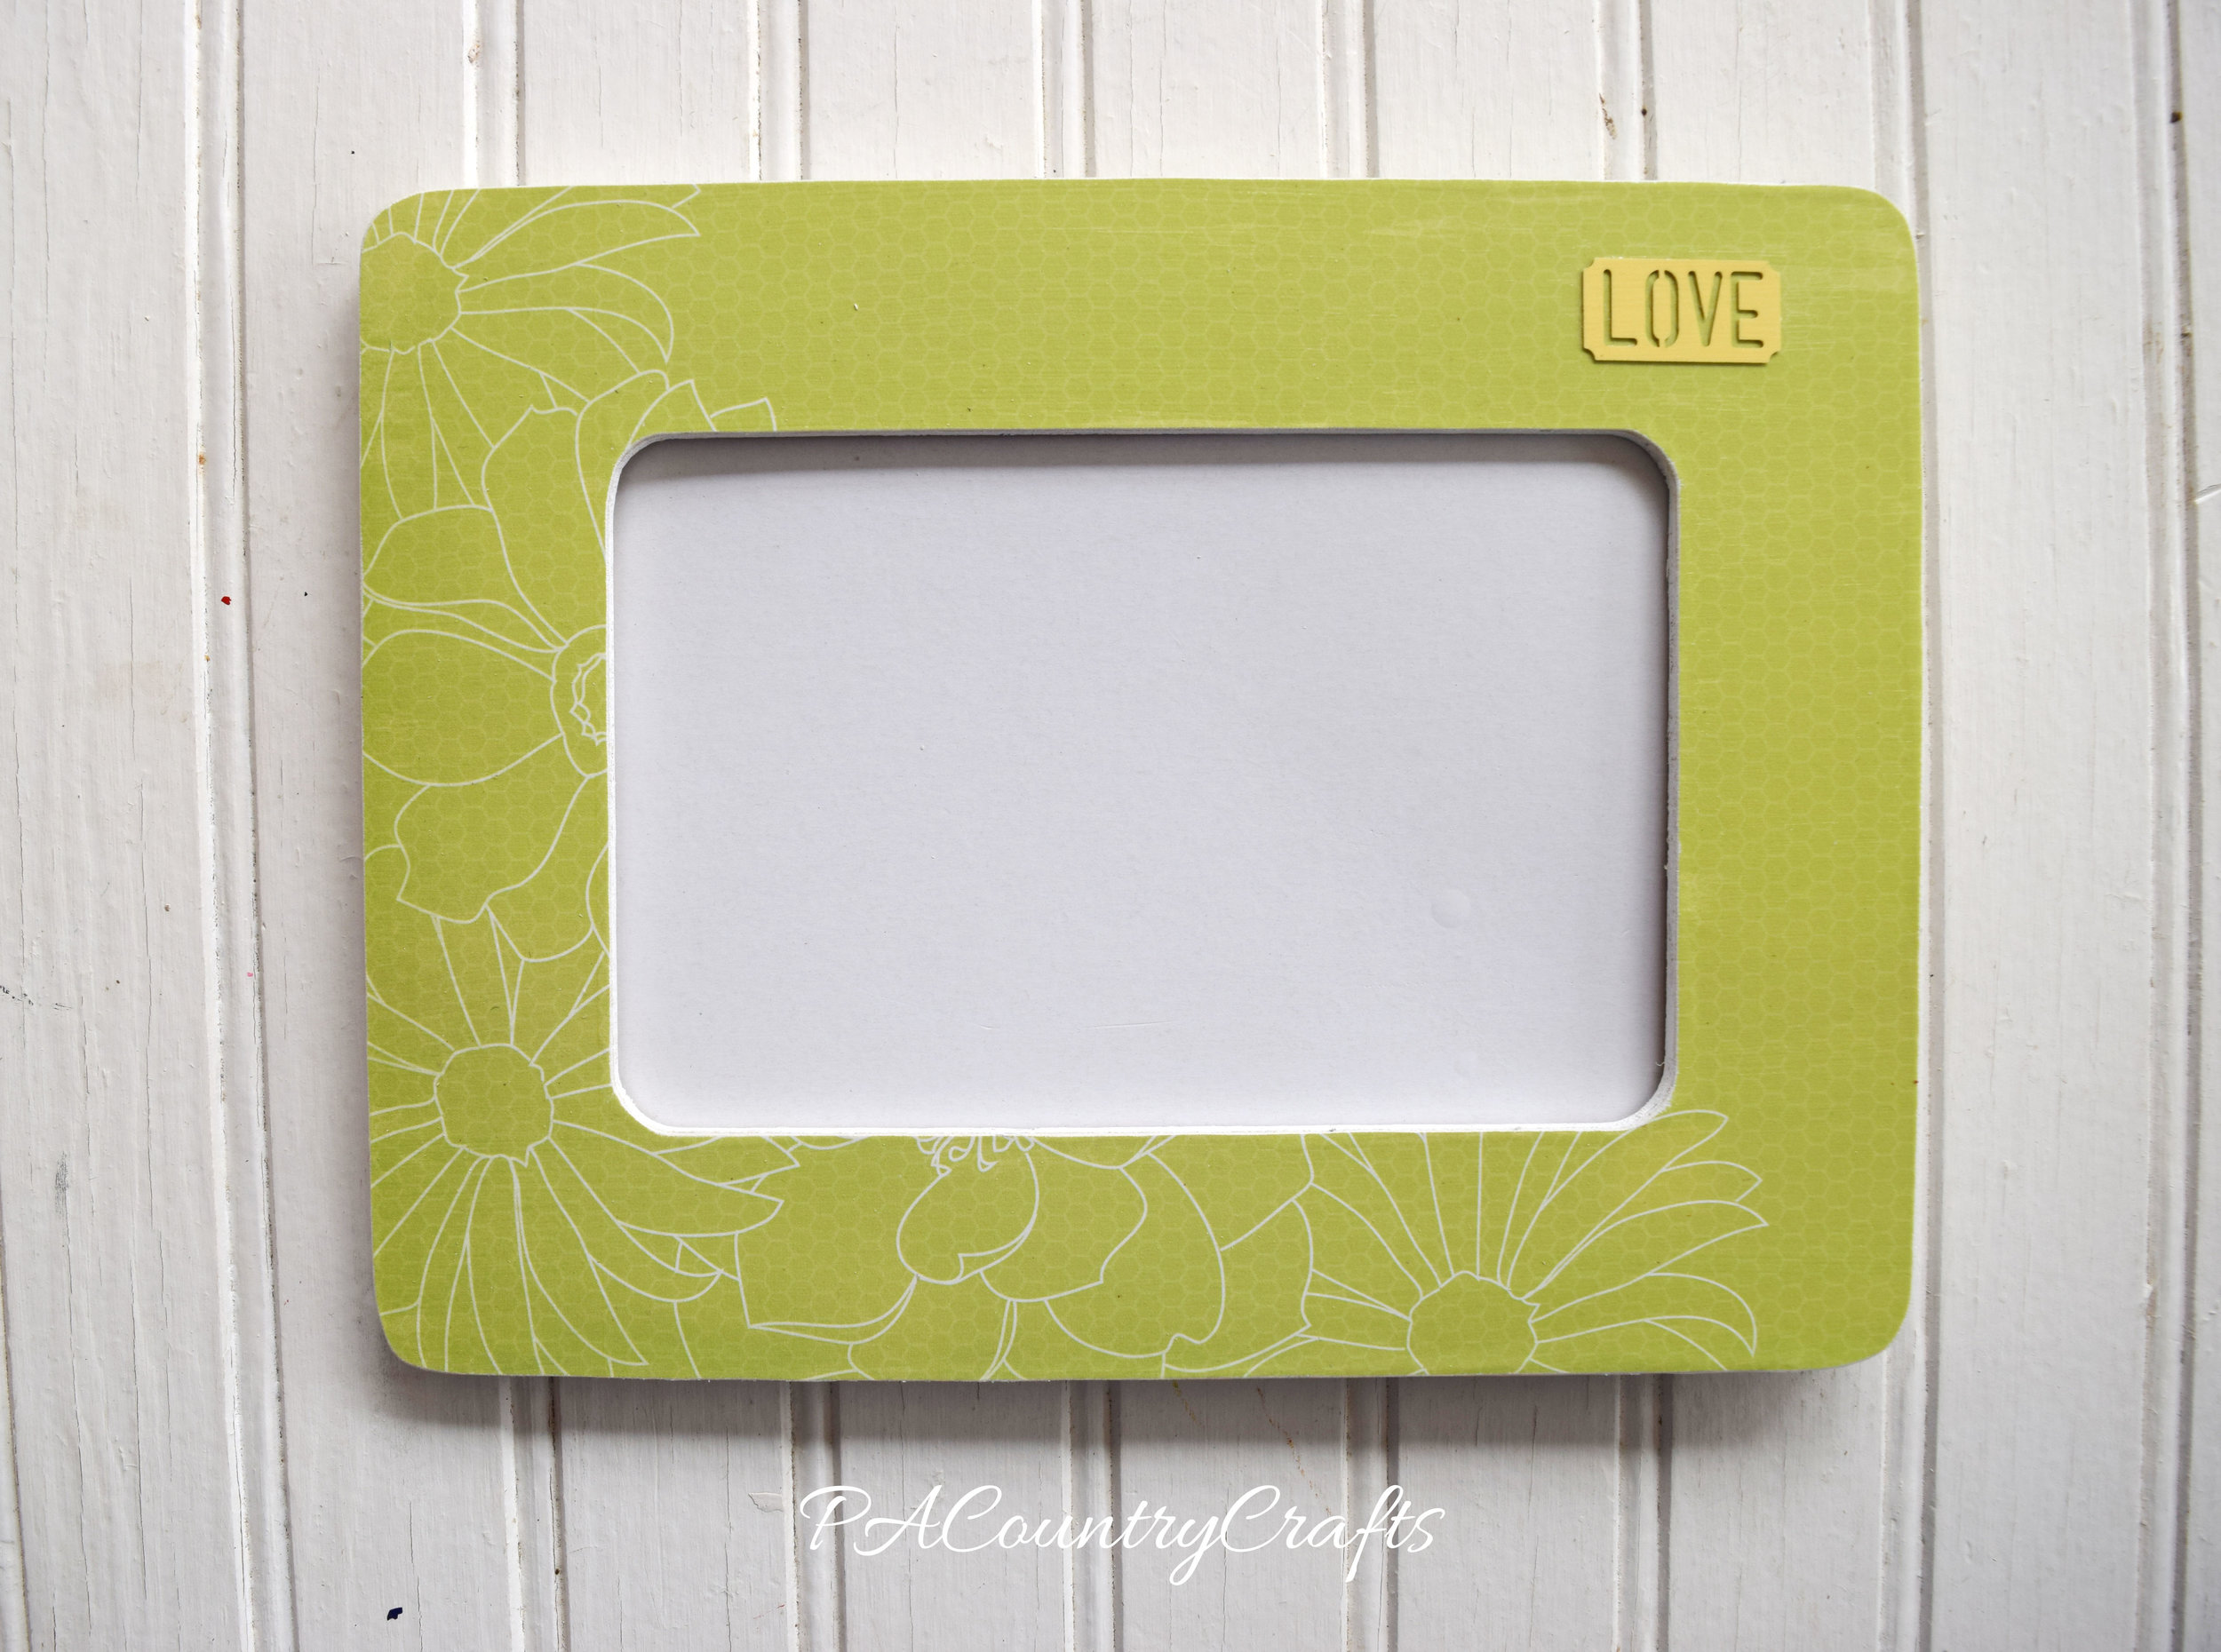 Easy picture frame craft project!